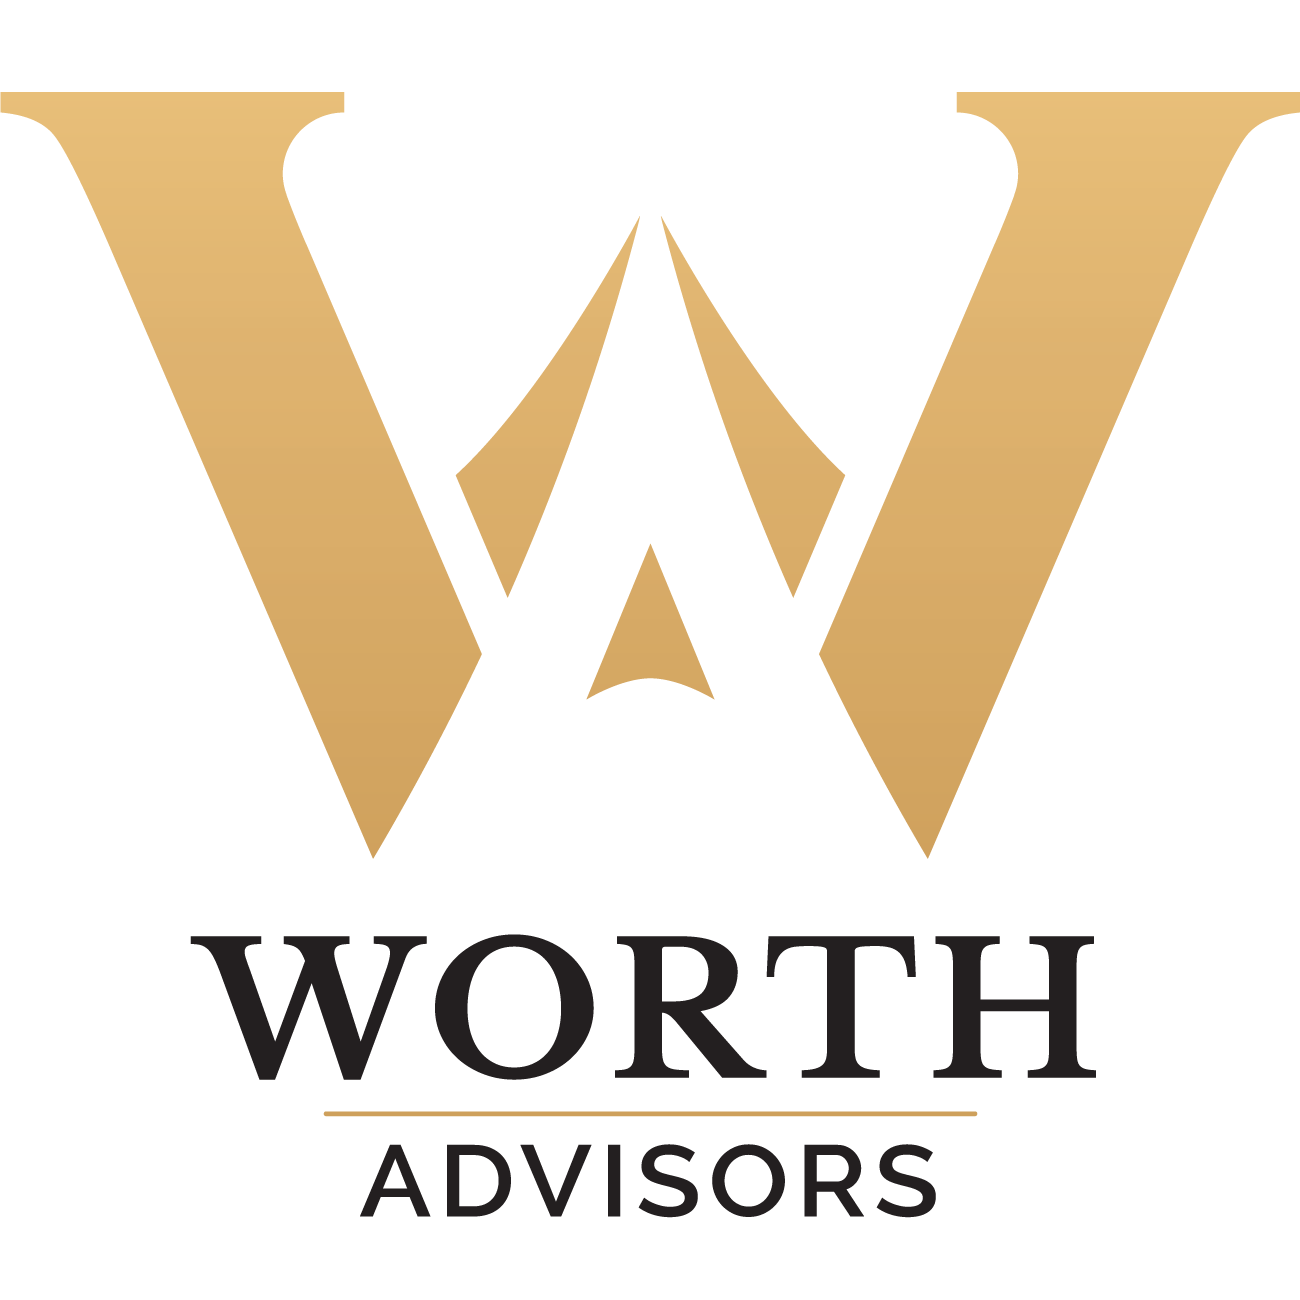 Worth_Advisors_logo